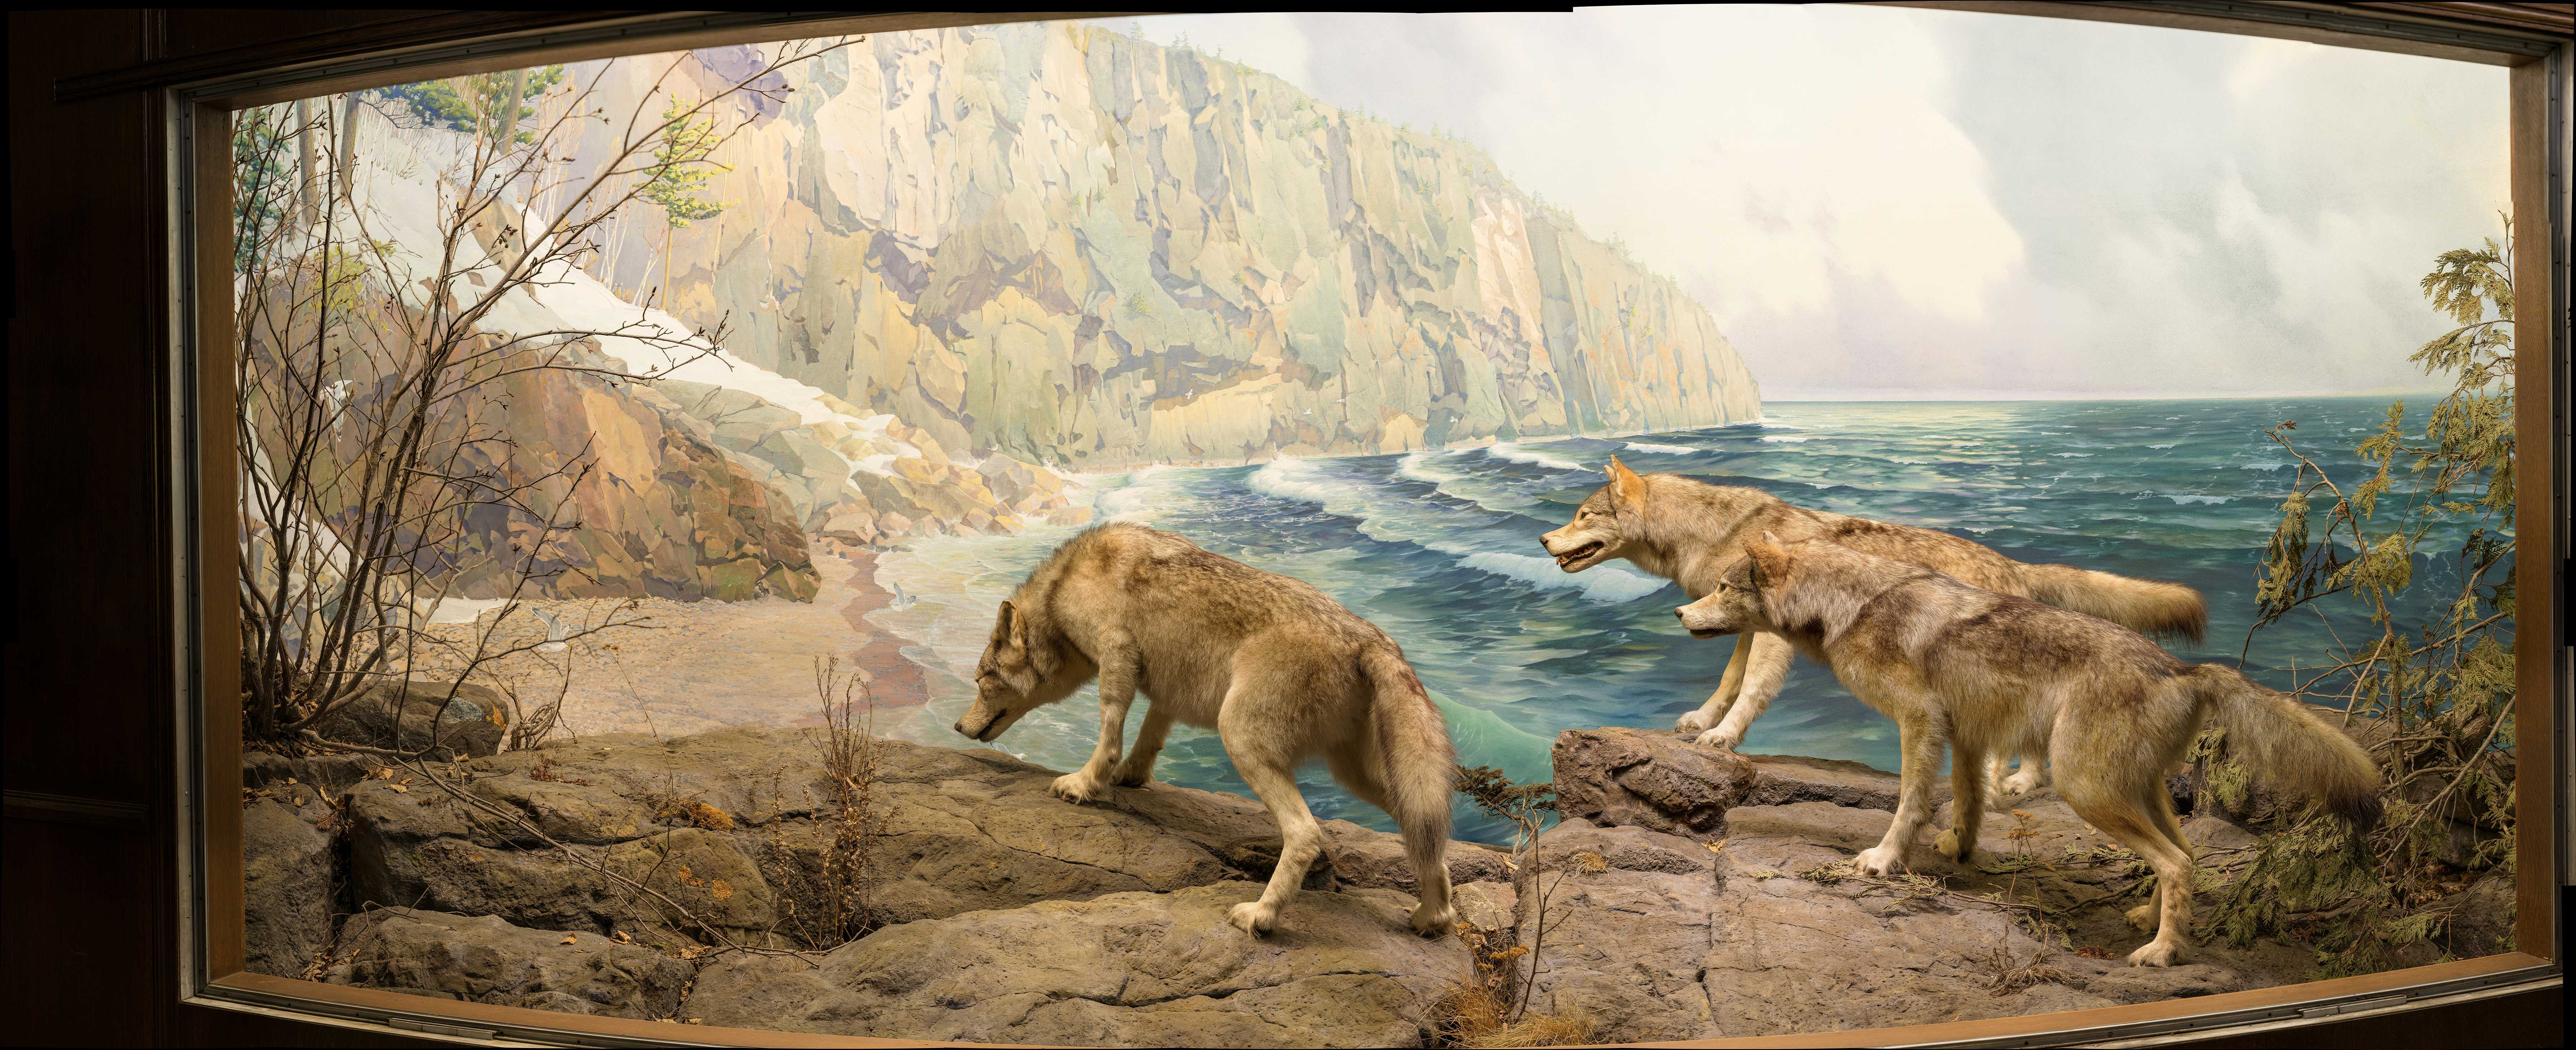 Before Animal Planet, Dioramas Revealed Nature in 3-D